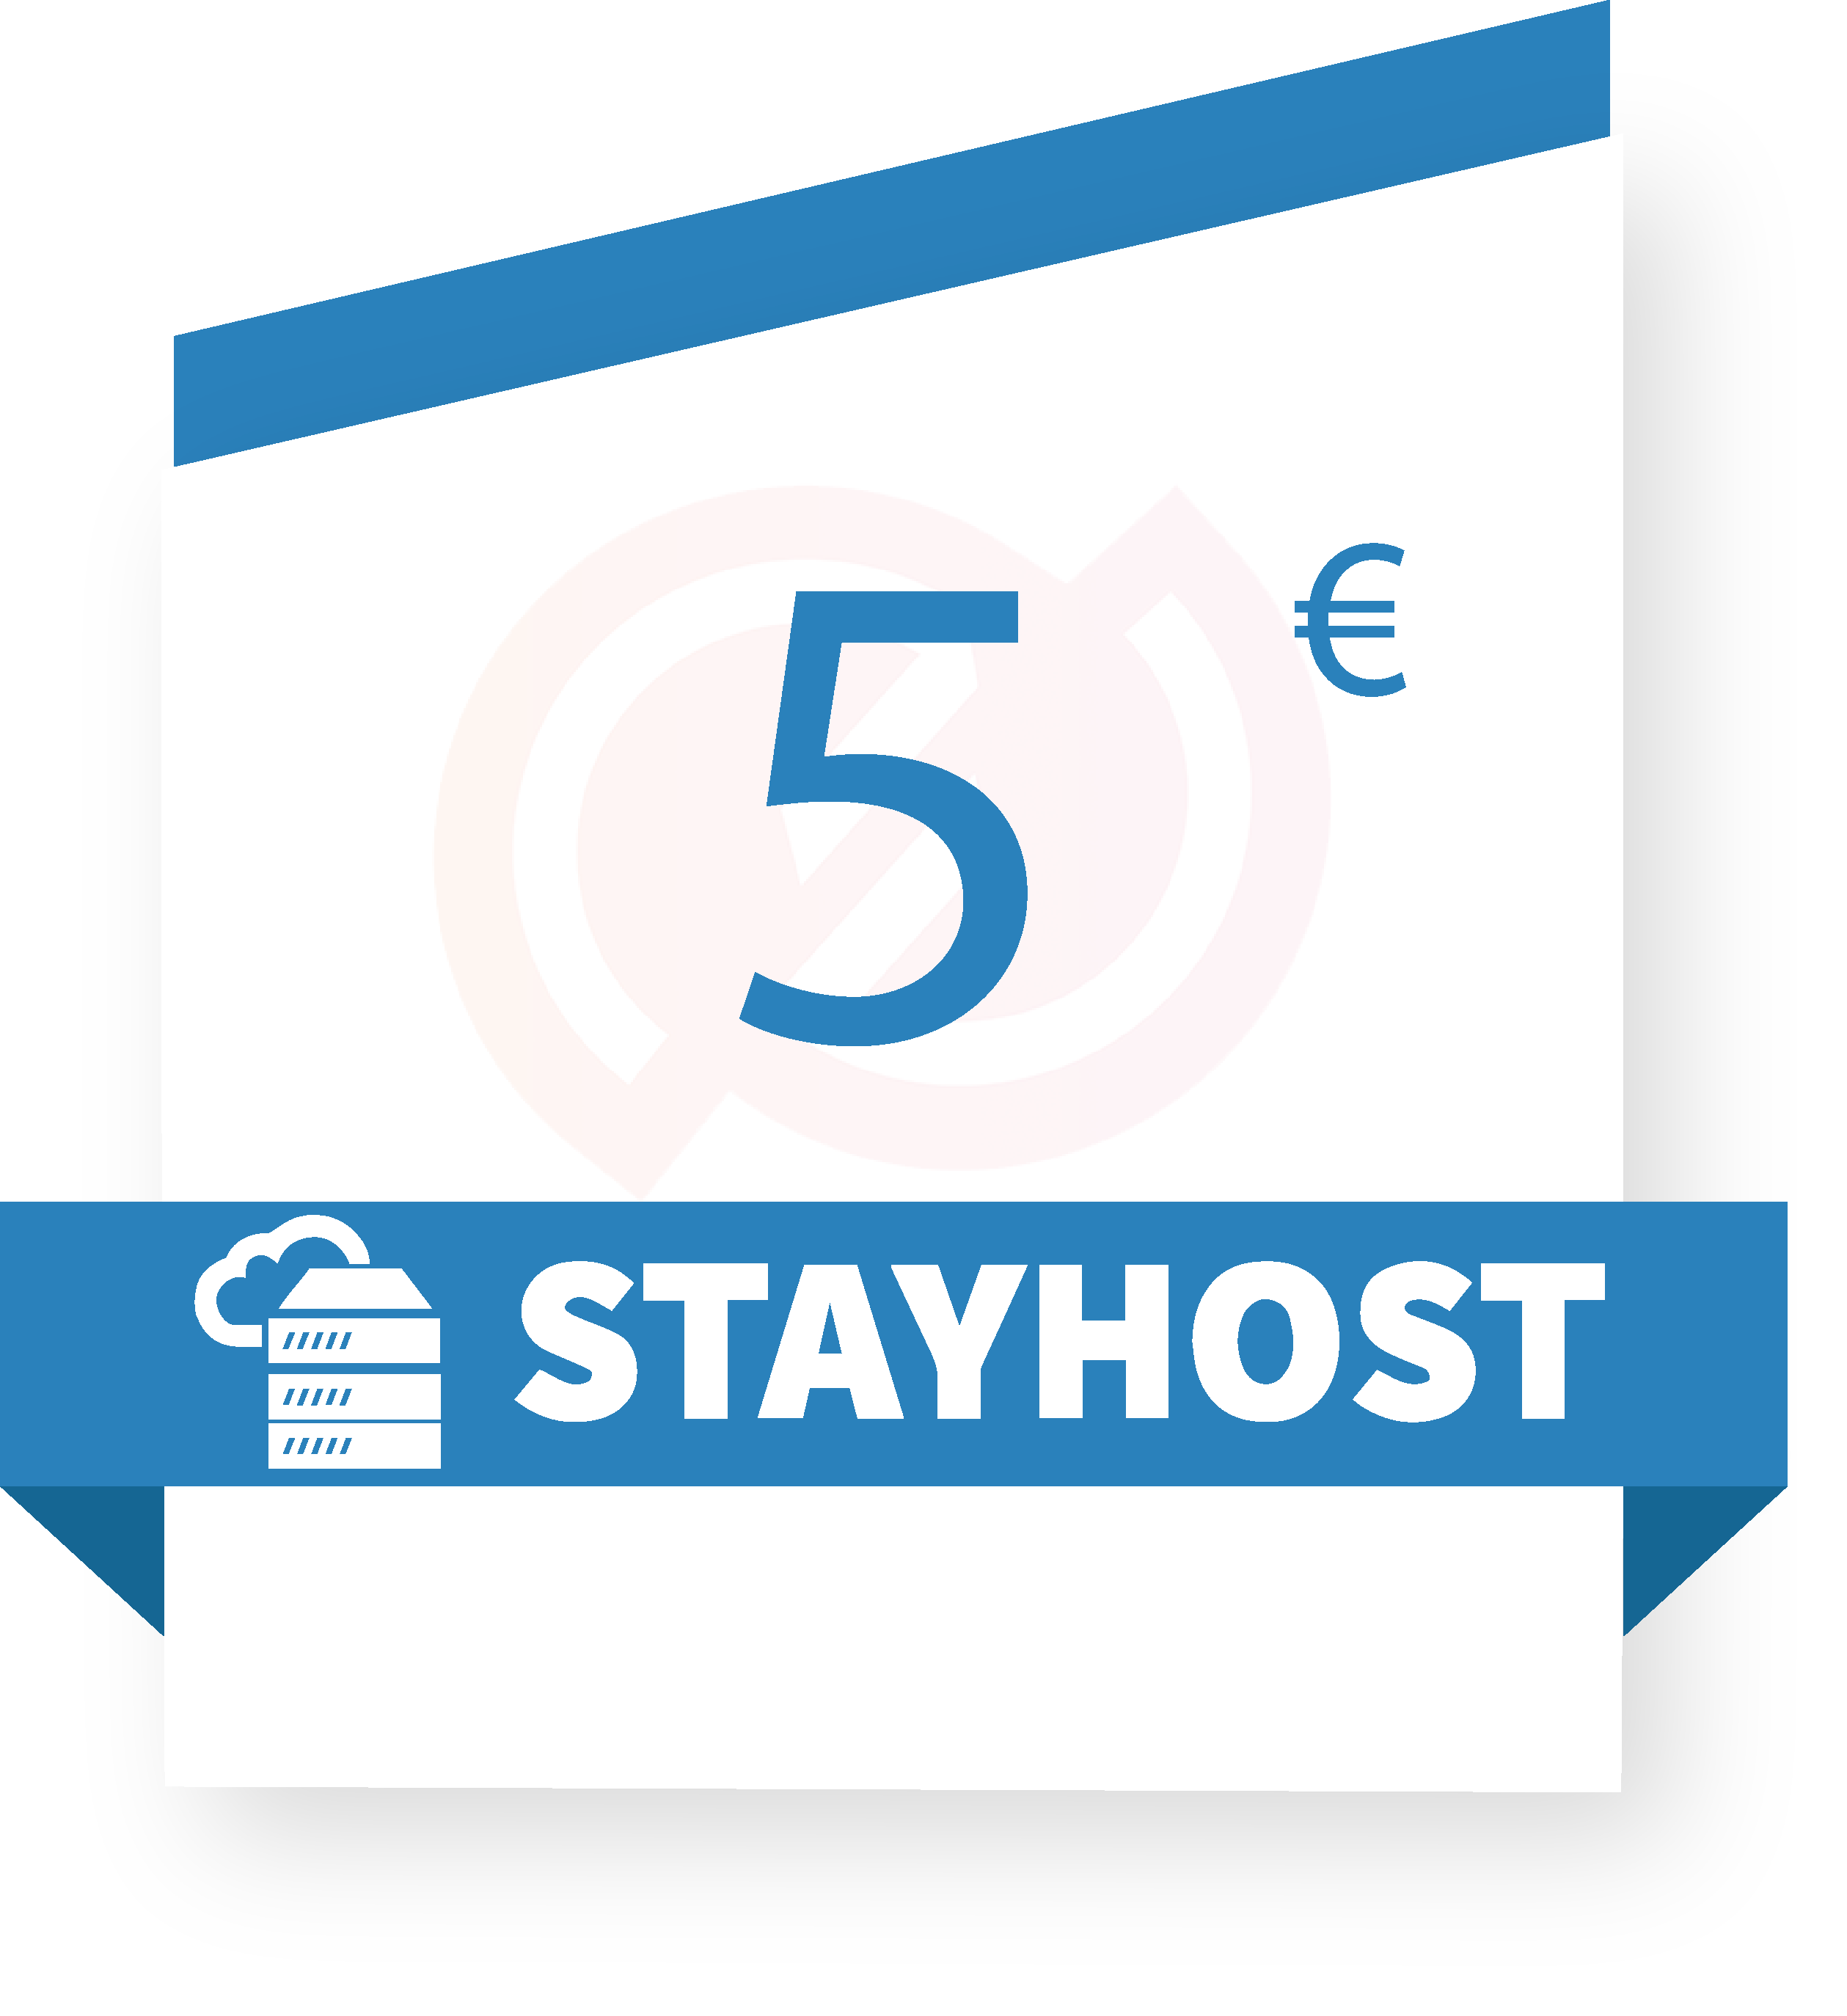 coupon Stayhost 5€